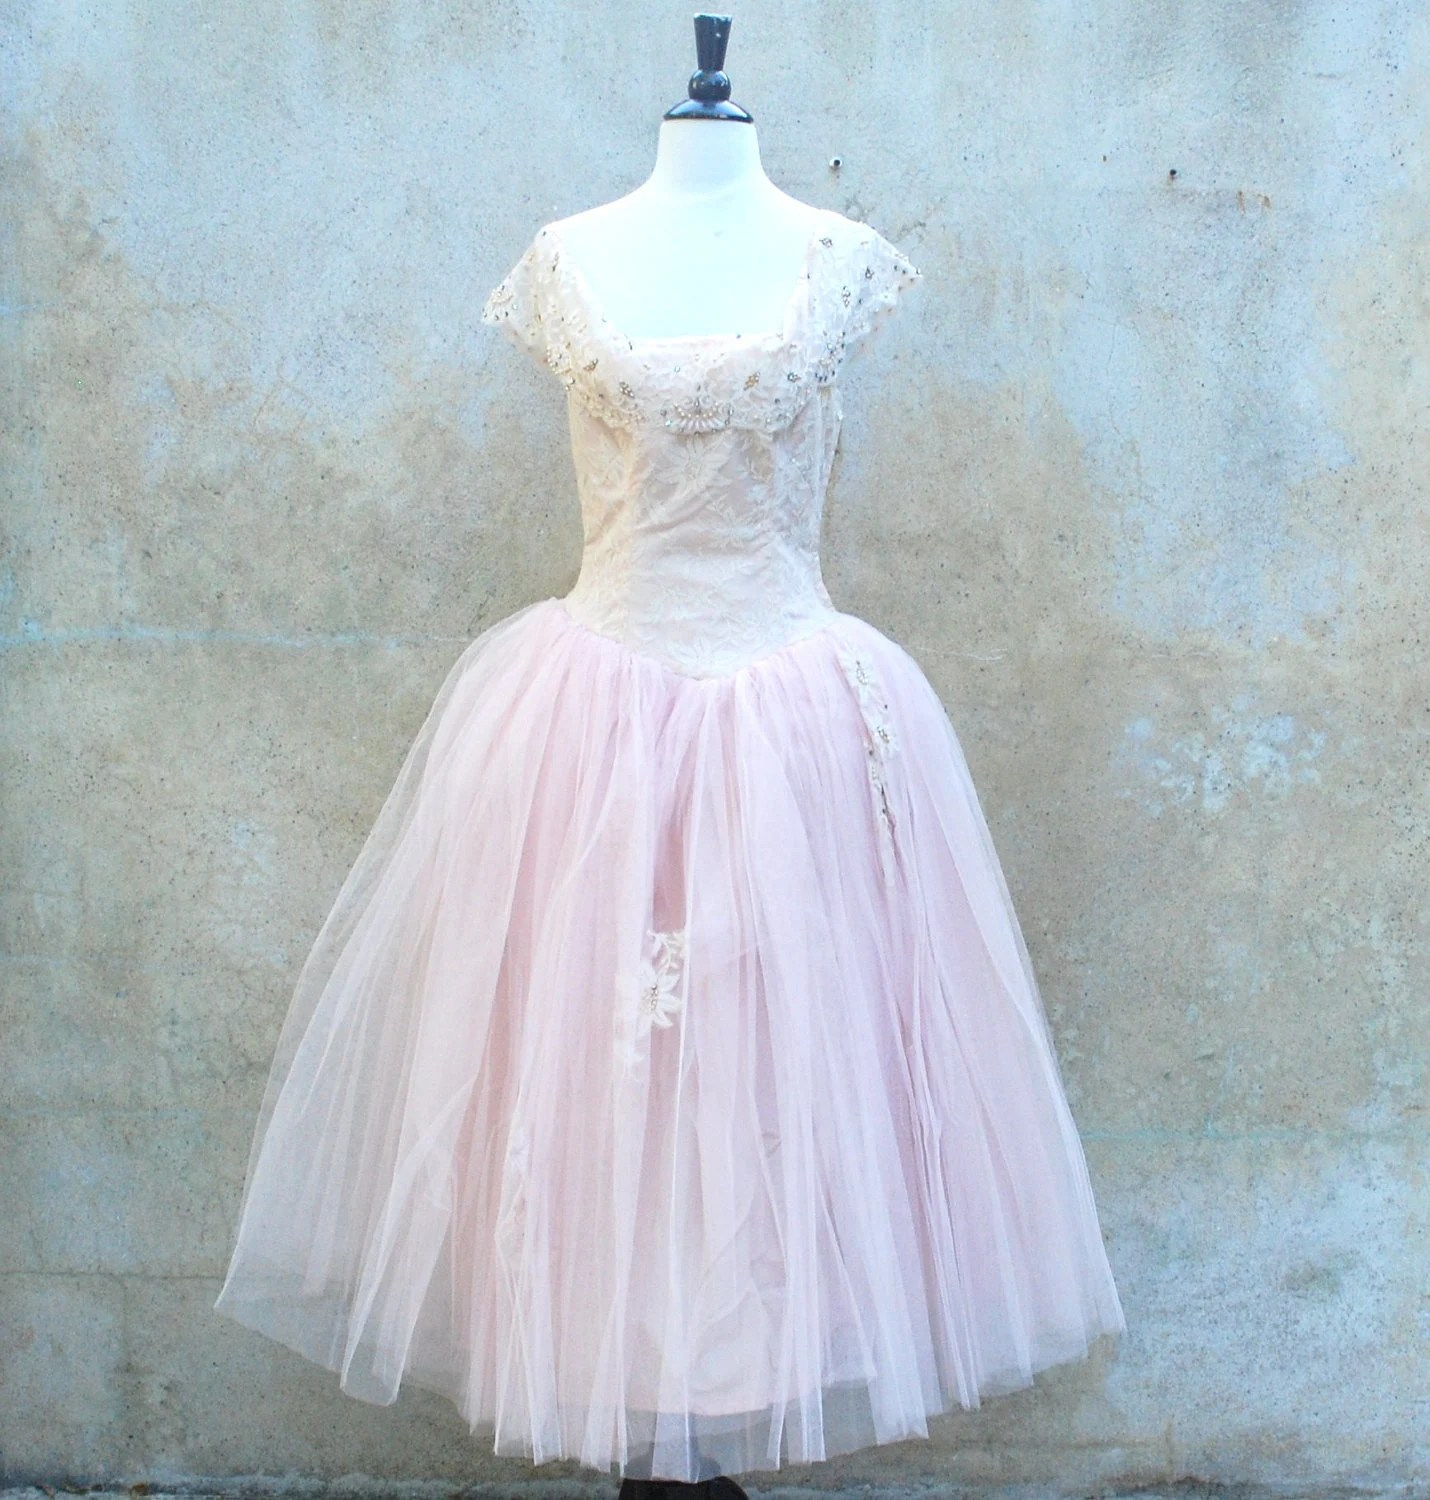 Vintage 1950s princess wedding dress - 50s romantic soft pink tulle prom / party dress - medium - circa1955vintage